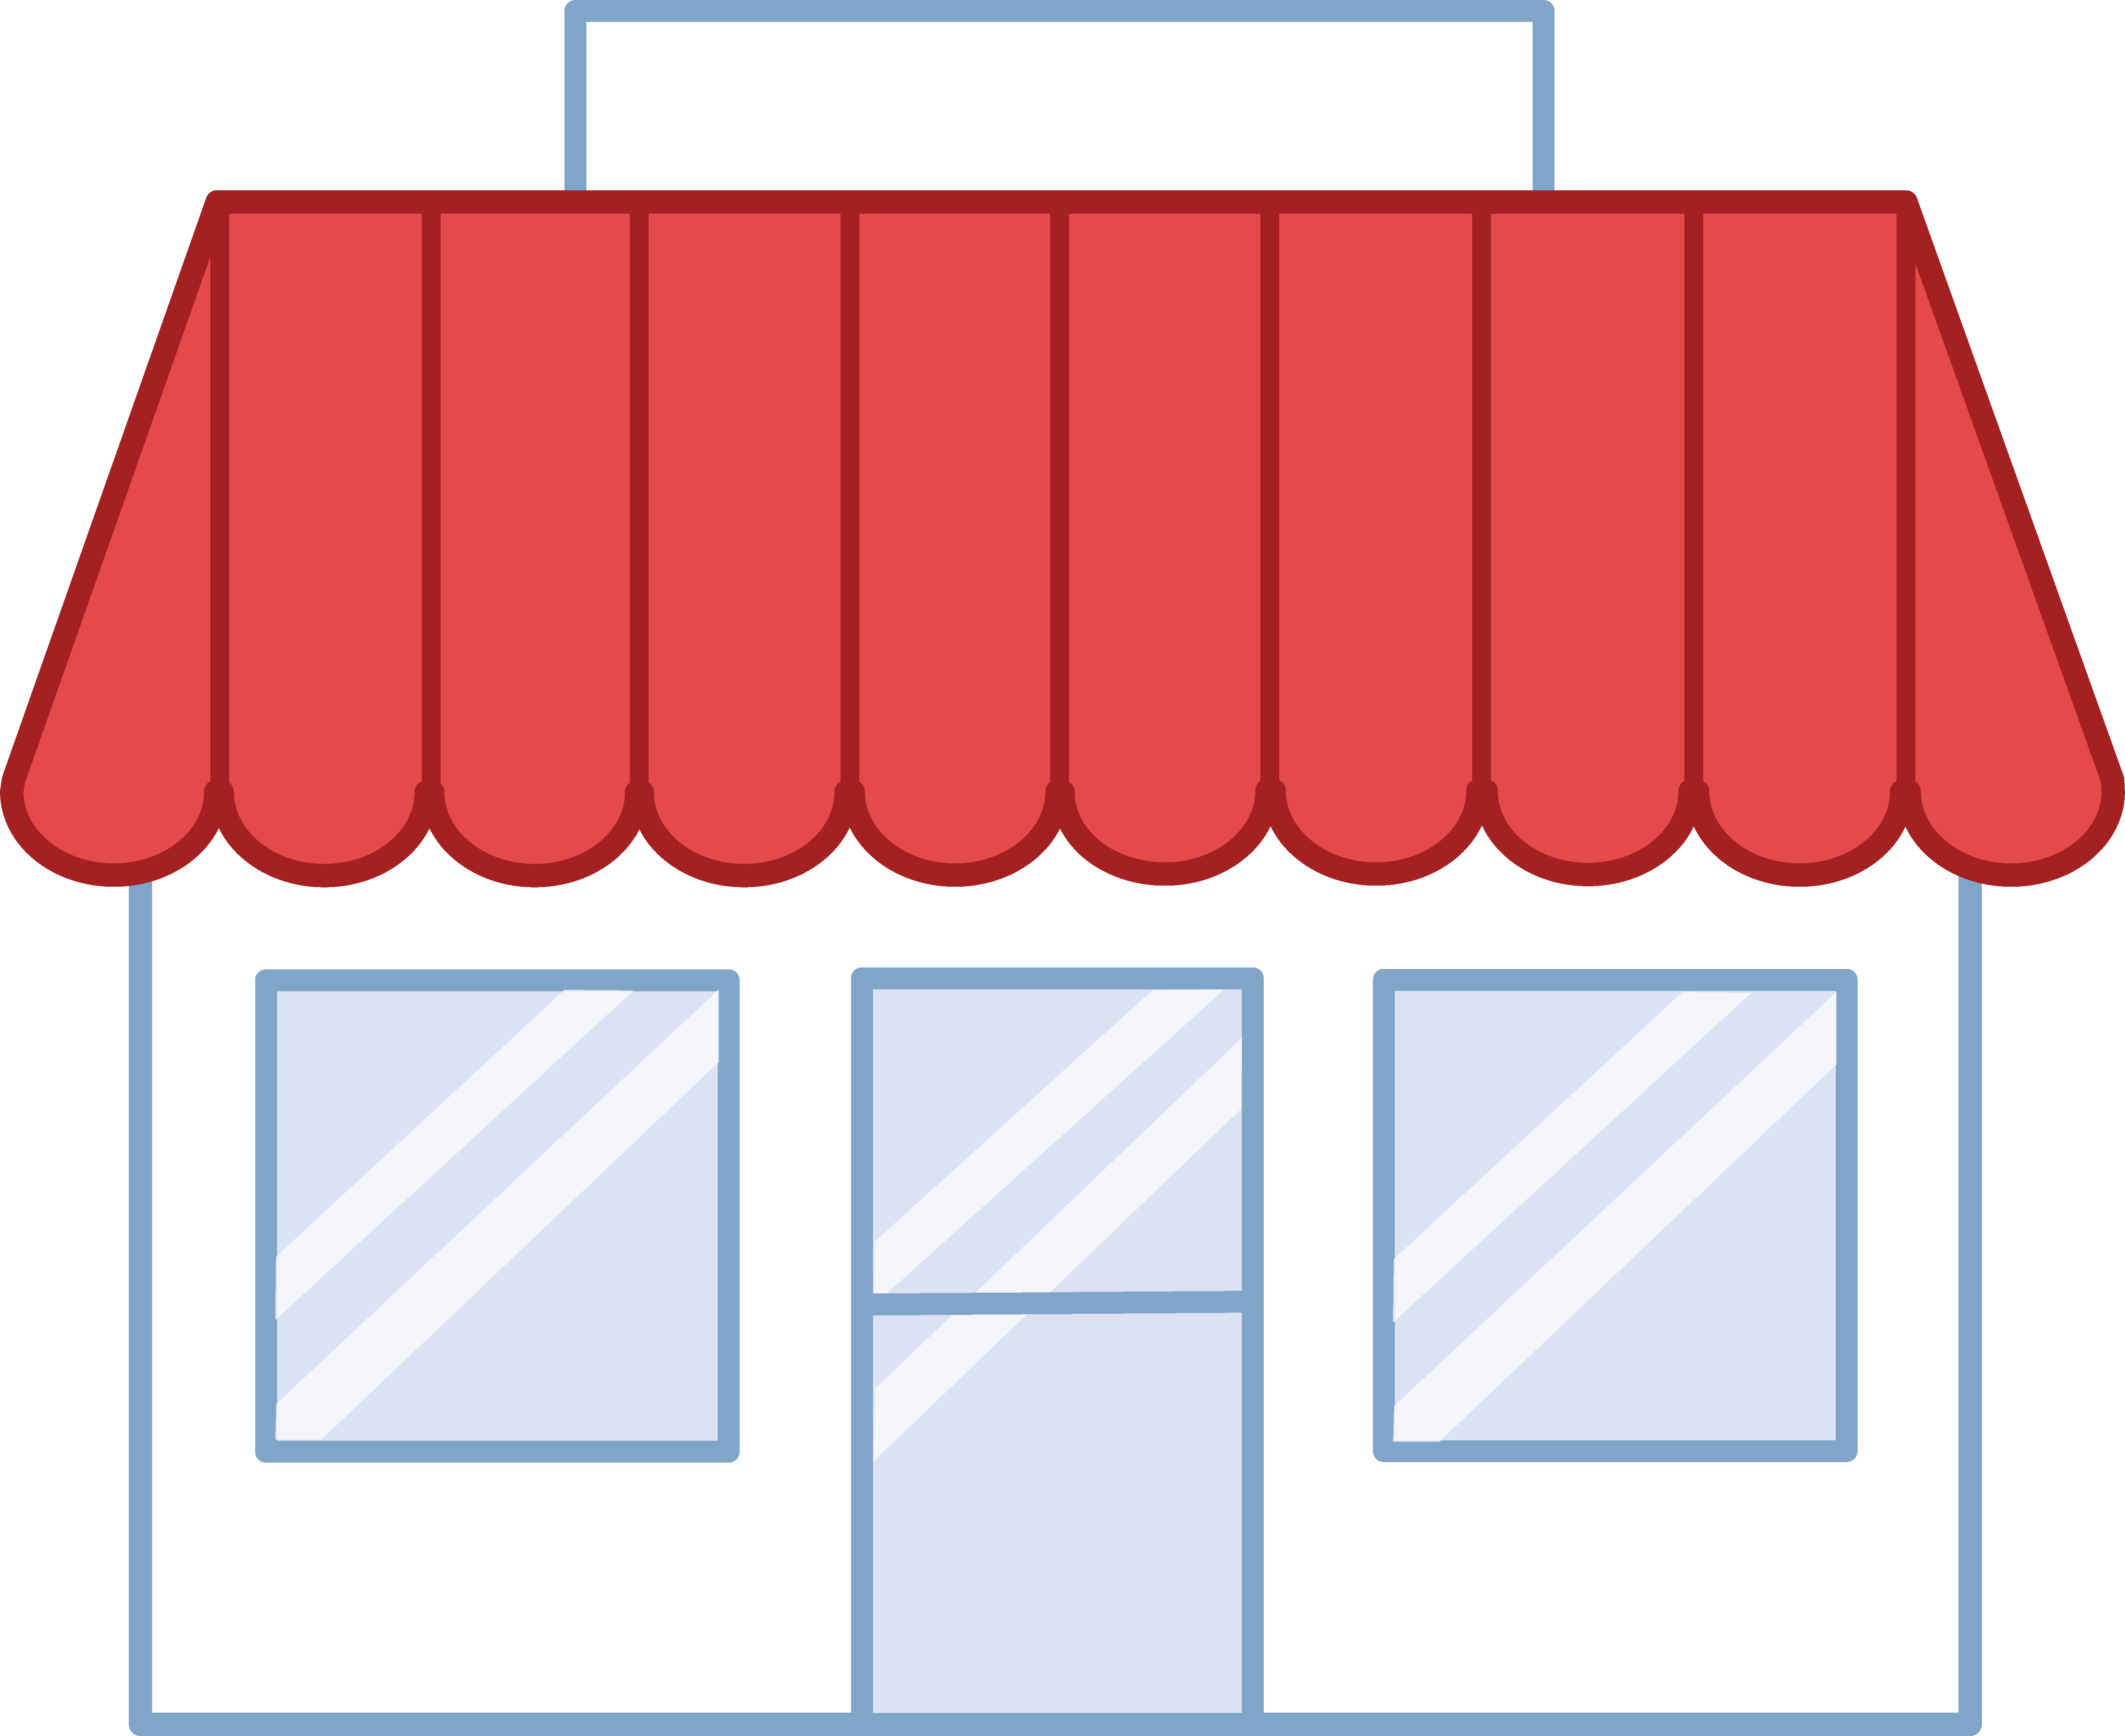 svg freeuse stock Building free . Supermarket clipart sari store.